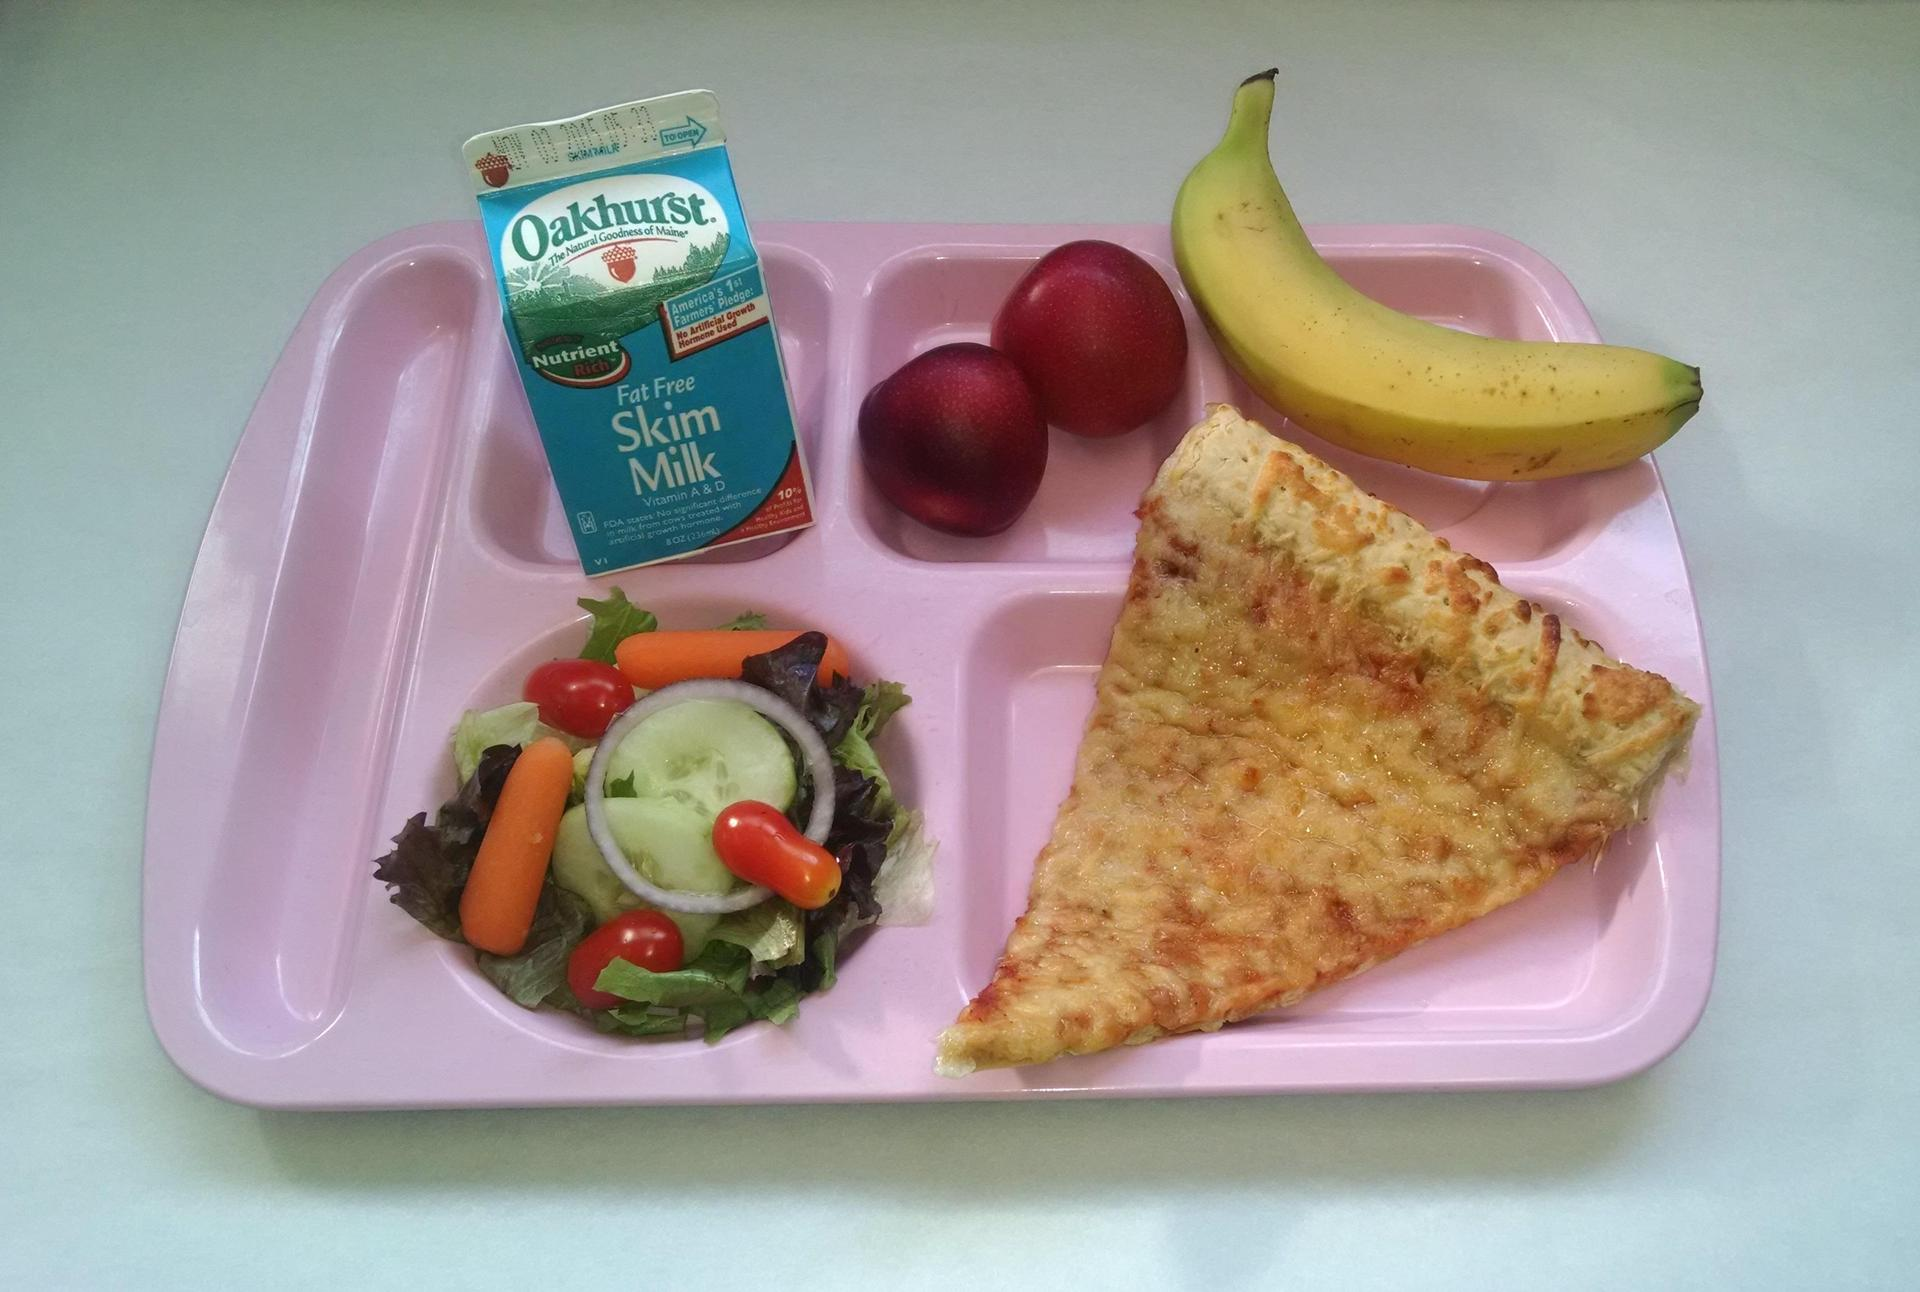 Stuffed Crust Cheese Pizza, Salad, Plums, Banana and Milk